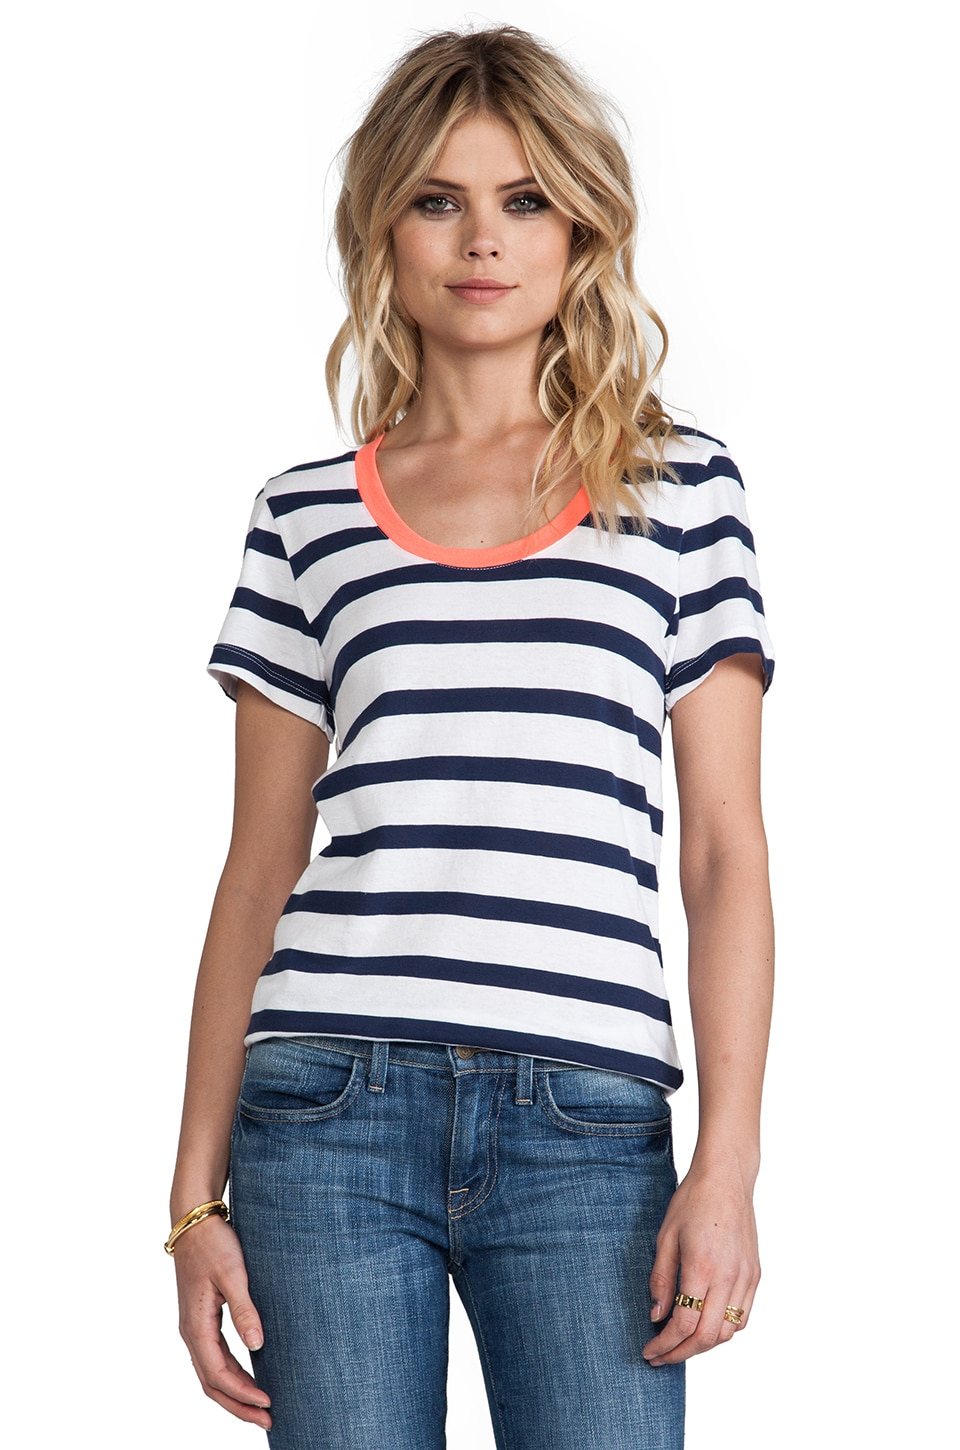 Bobi Light Weight Jersey Stripe Tee in Marina & White & Tetra